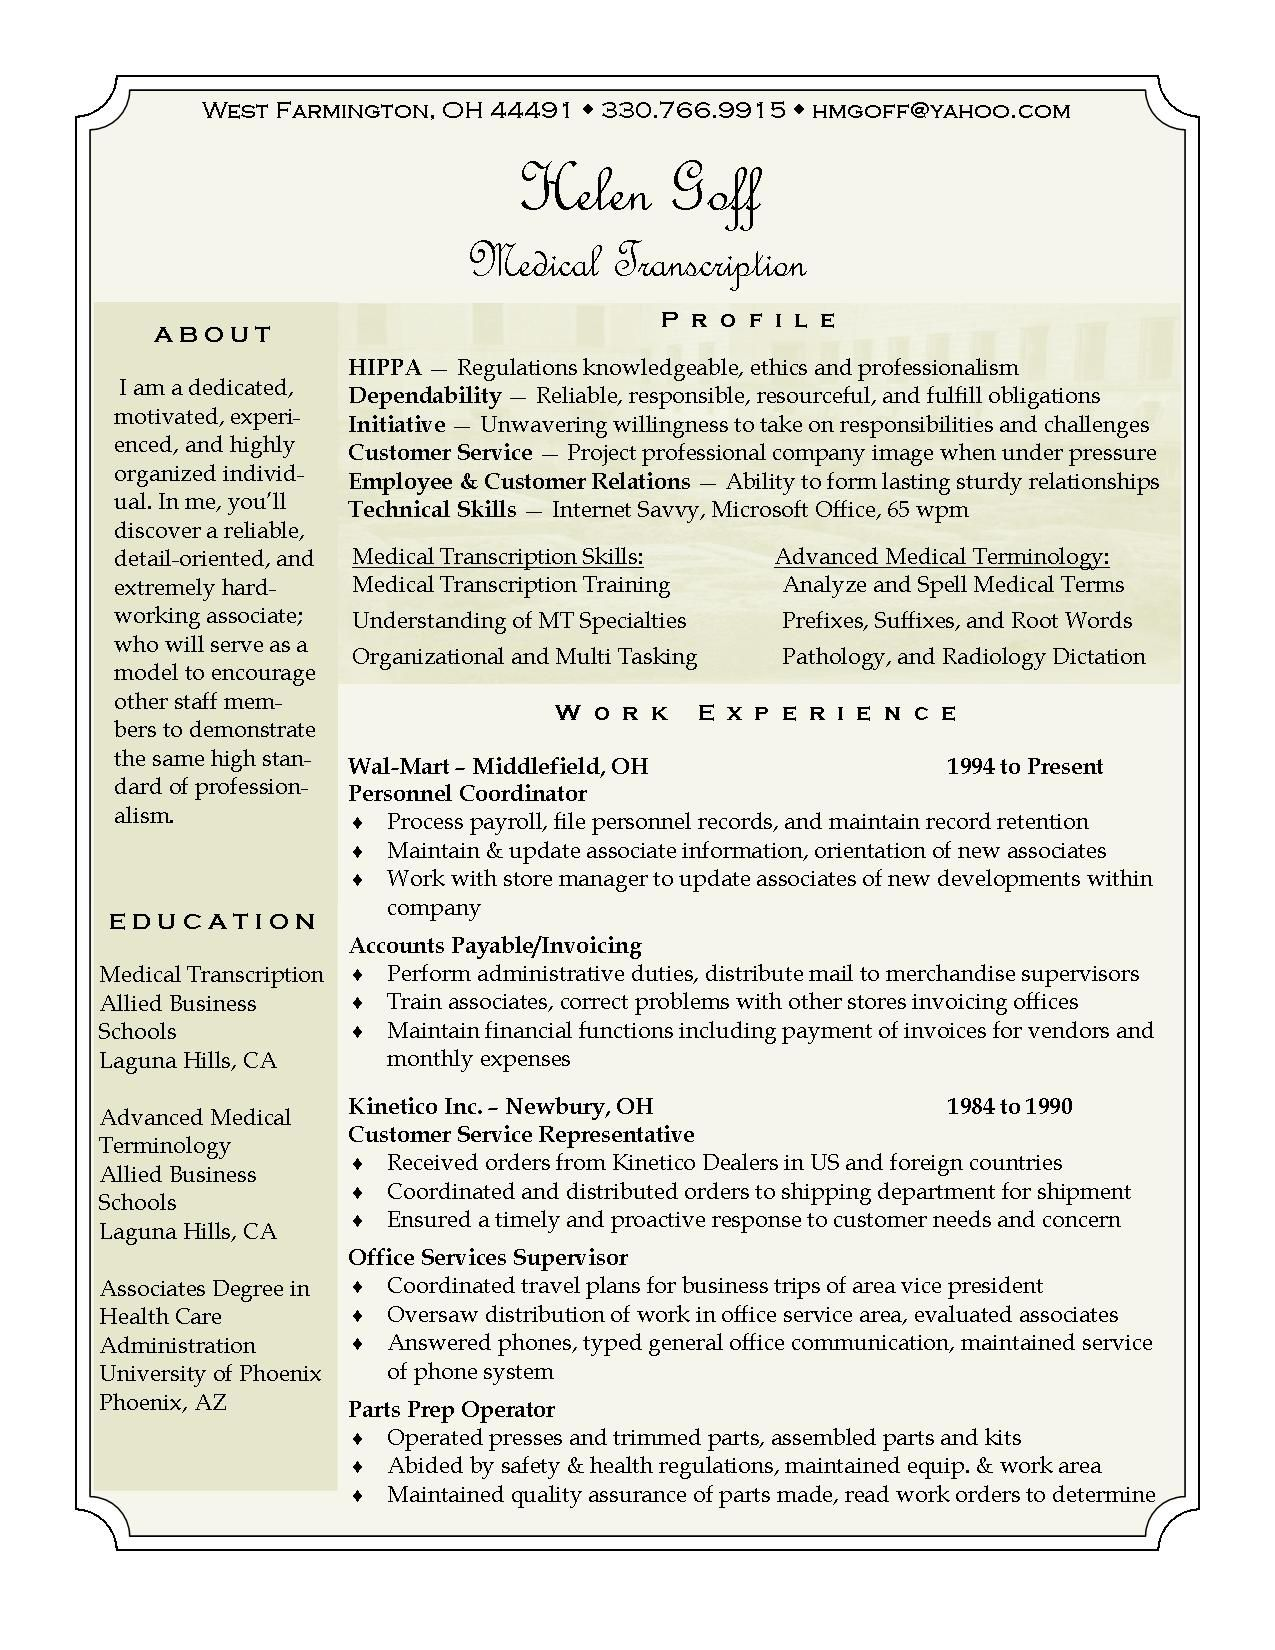 Helen Goff Resume  Medical Transcription Resume Career